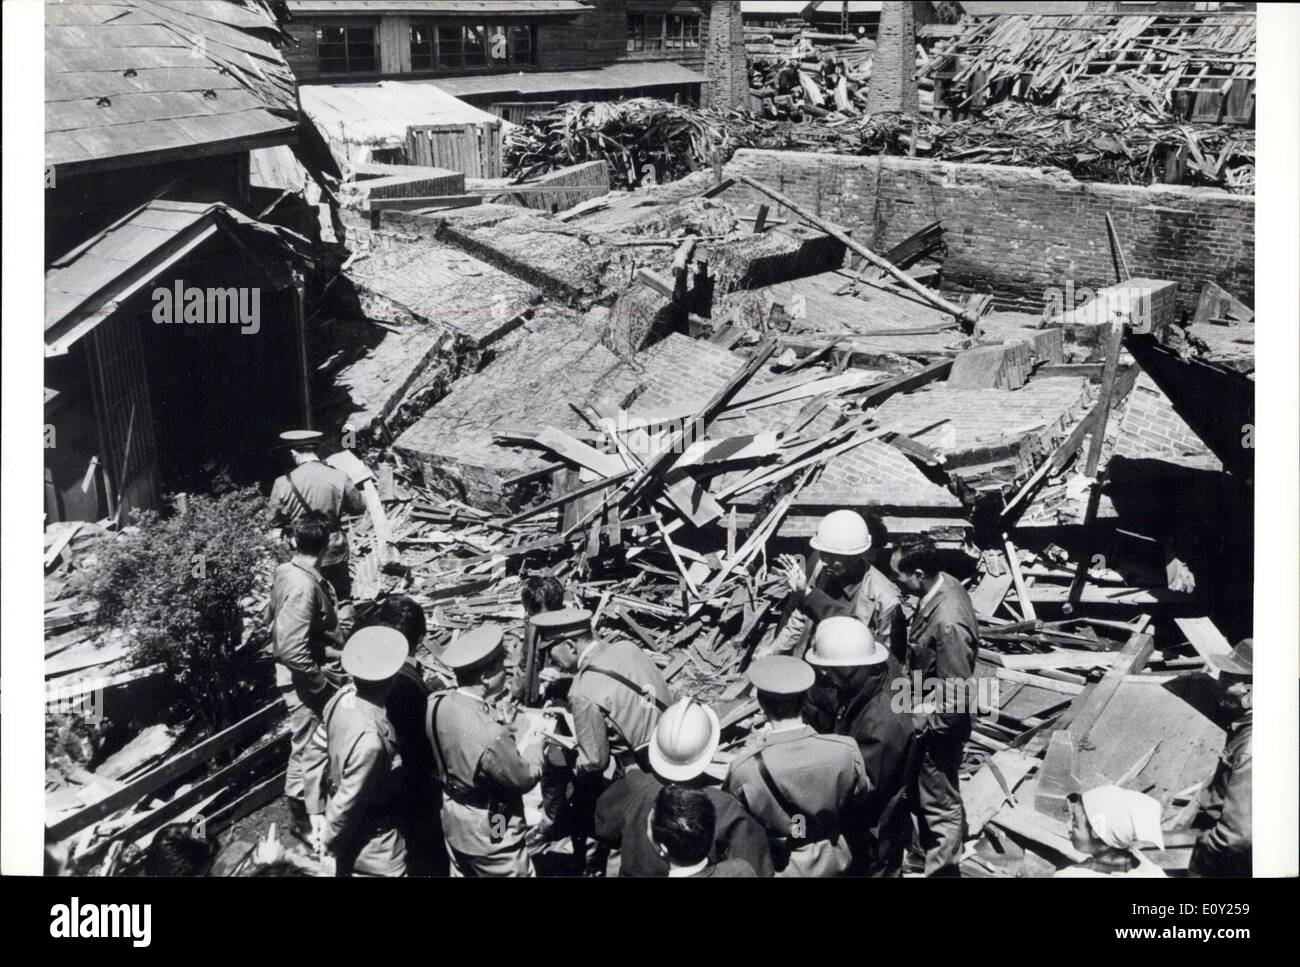 May 17, 1968 - Big Earthquakes Rock North Japan: Two violent earthquake struck an extensive area in Northern Japan on Thursday May 17, 1968, killing 38 people, injuring many, and destroying 800 buildings. Fires and tidal waves followed driving ships on the rocks, and sinking many fishing boats. It was the worst earthquake since the Good Friday earthquake in Alaska in 1964. The Northern Japan earthquake registered 7.8 on the Richter scale, just short of the 7.9 which leveled Tokyo and Yokohama in 1923 killing 100,000 people - Stock Image